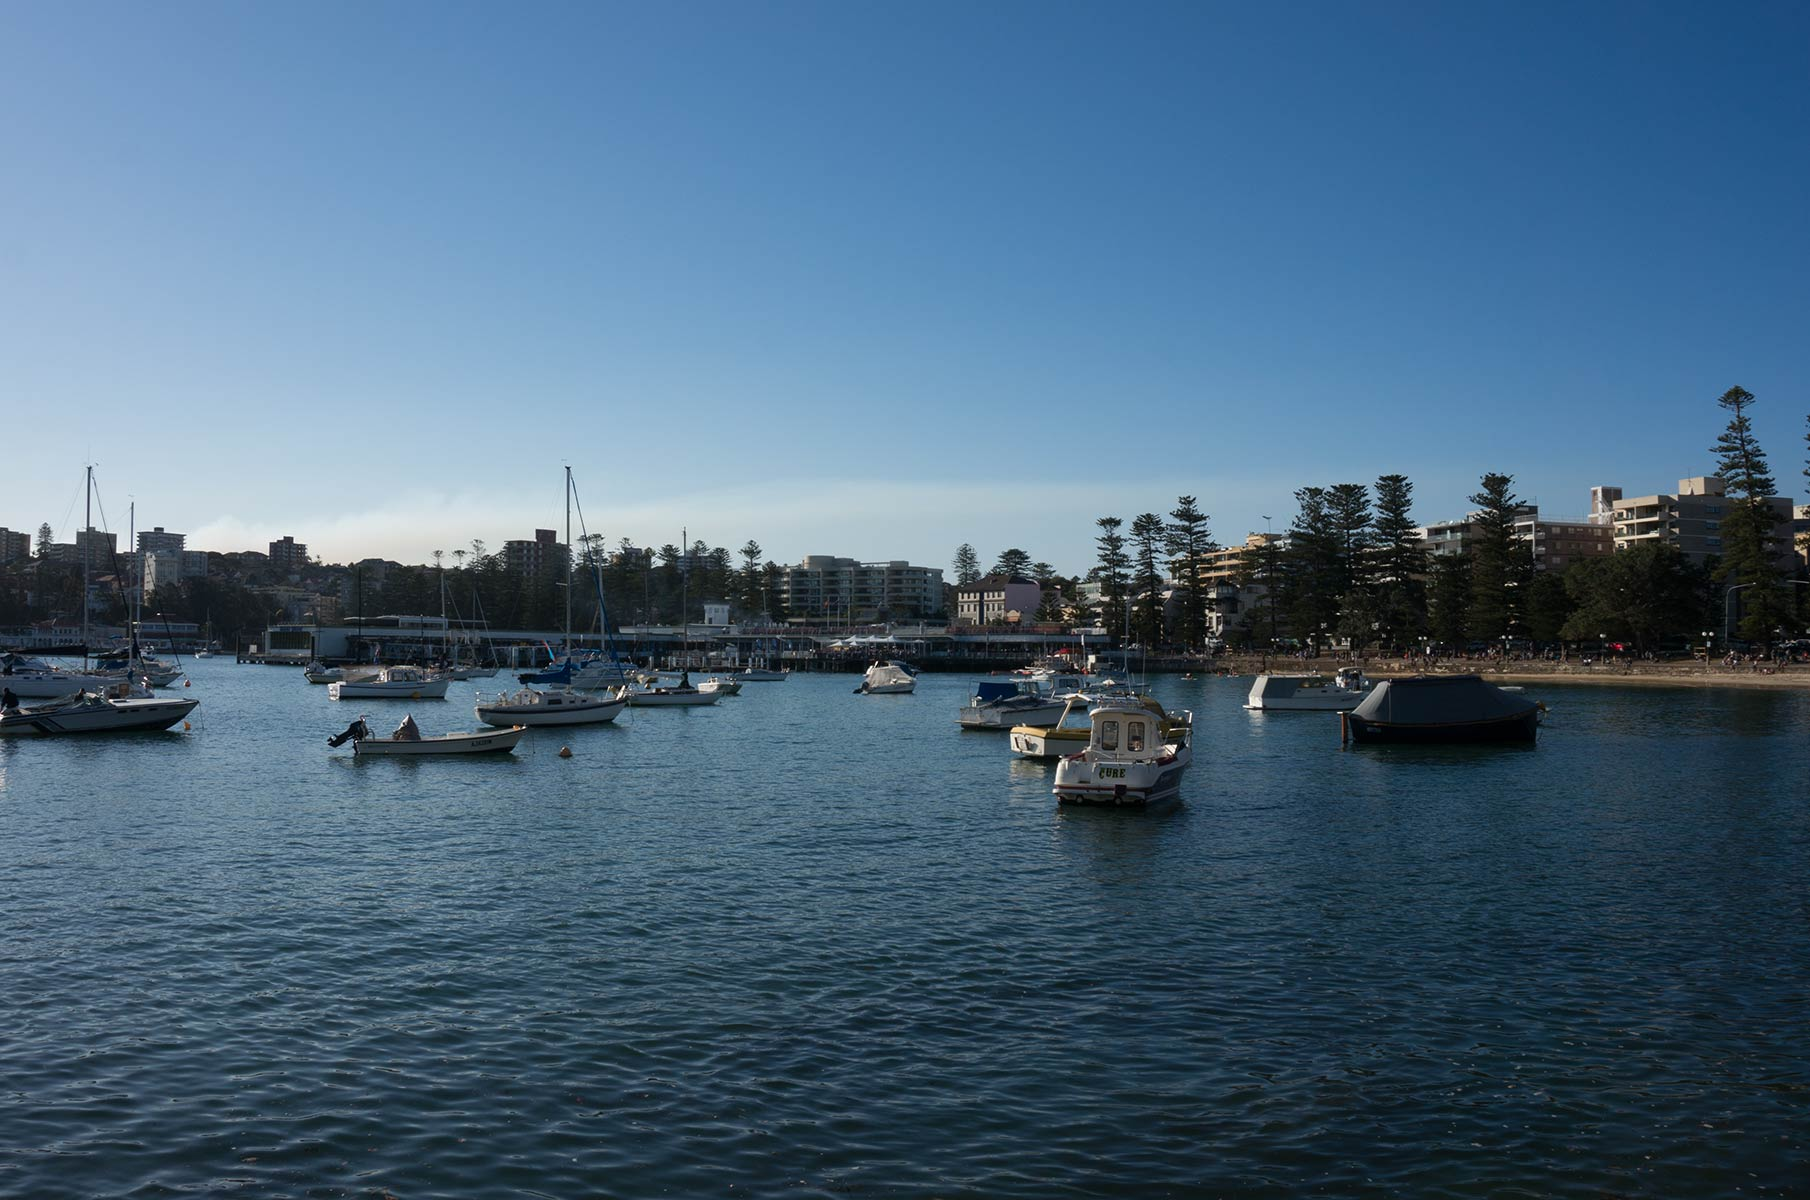 Manly Wharf in Sydney, Australien